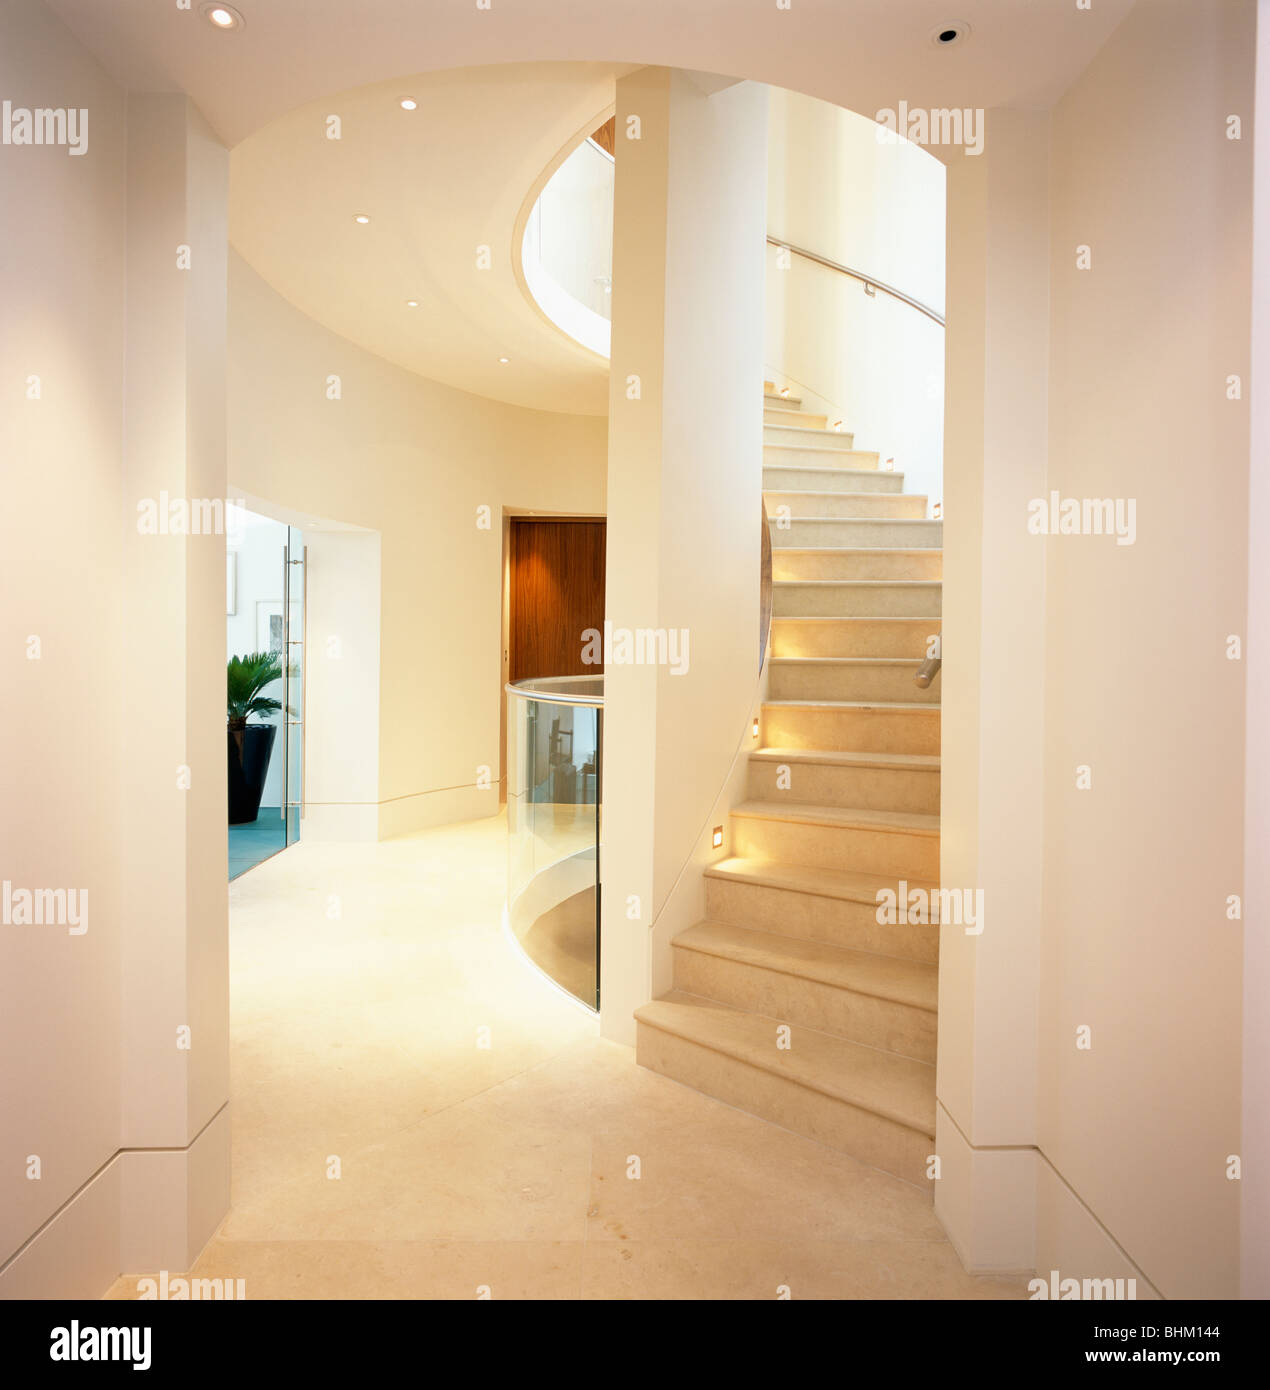 Curved Staircase Stock Photos & Curved Staircase Stock Images - Alamy